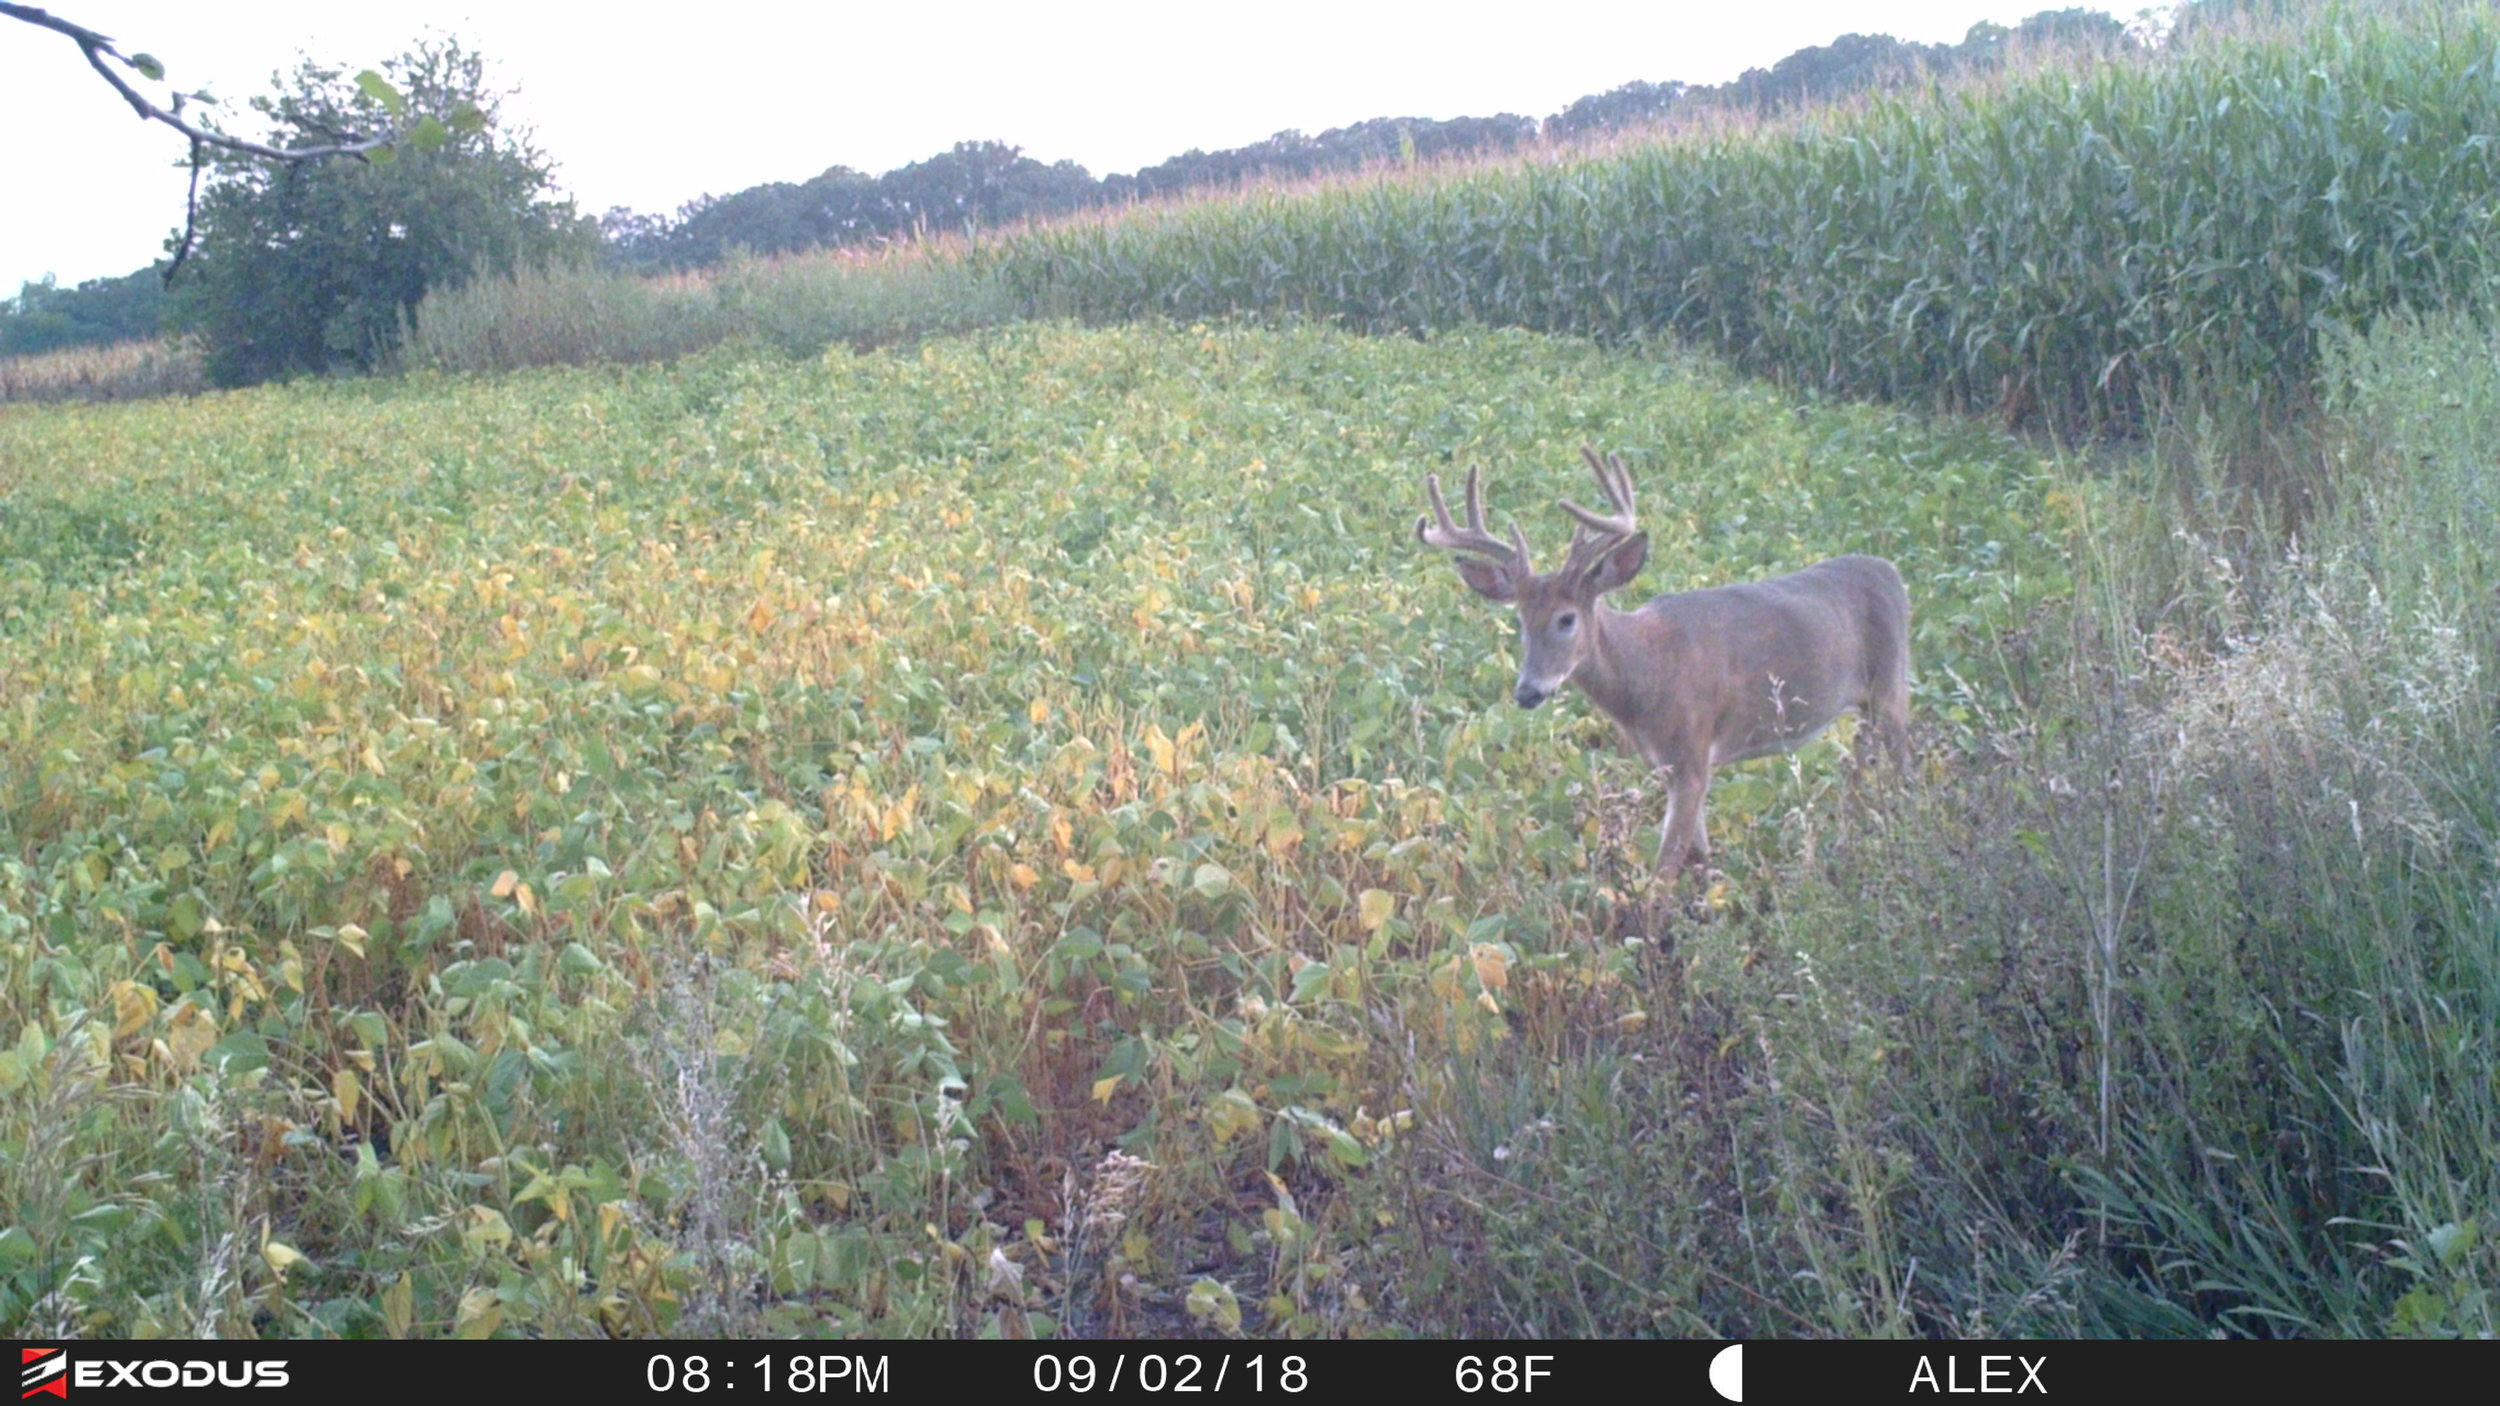 The buck, two nights before I ended up shooting him.